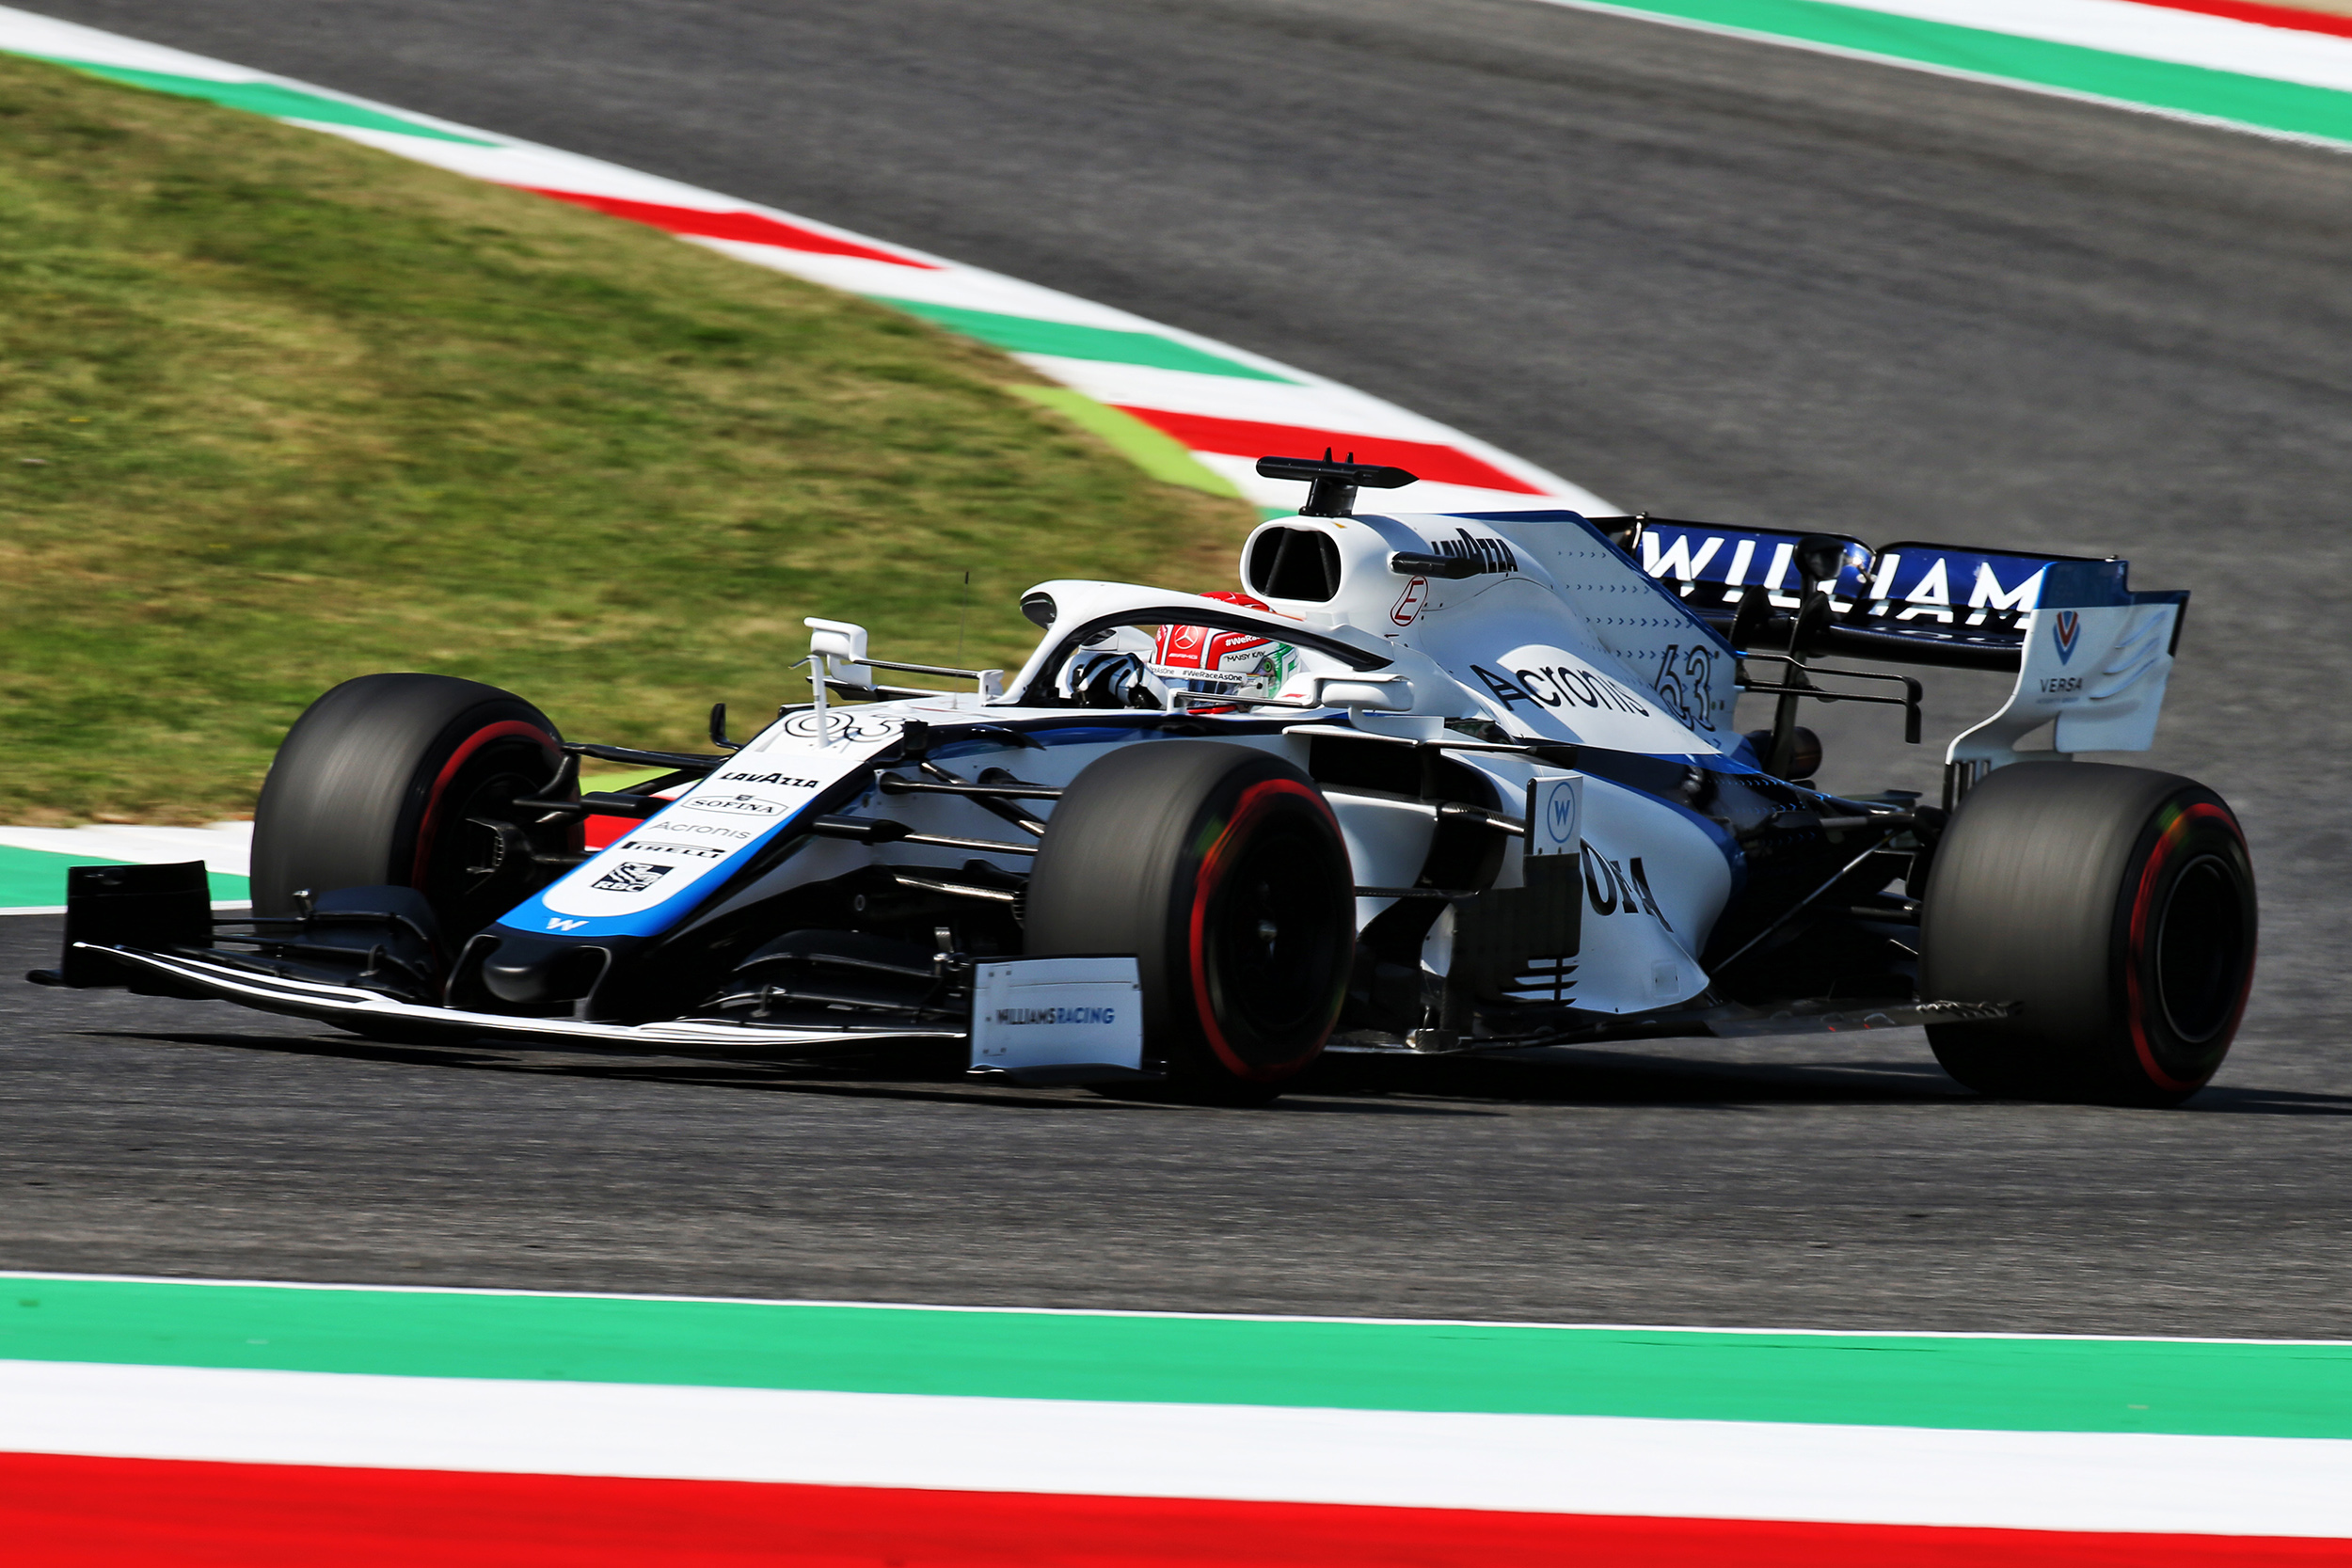 williams-russell-mugello-grille-départ-f1